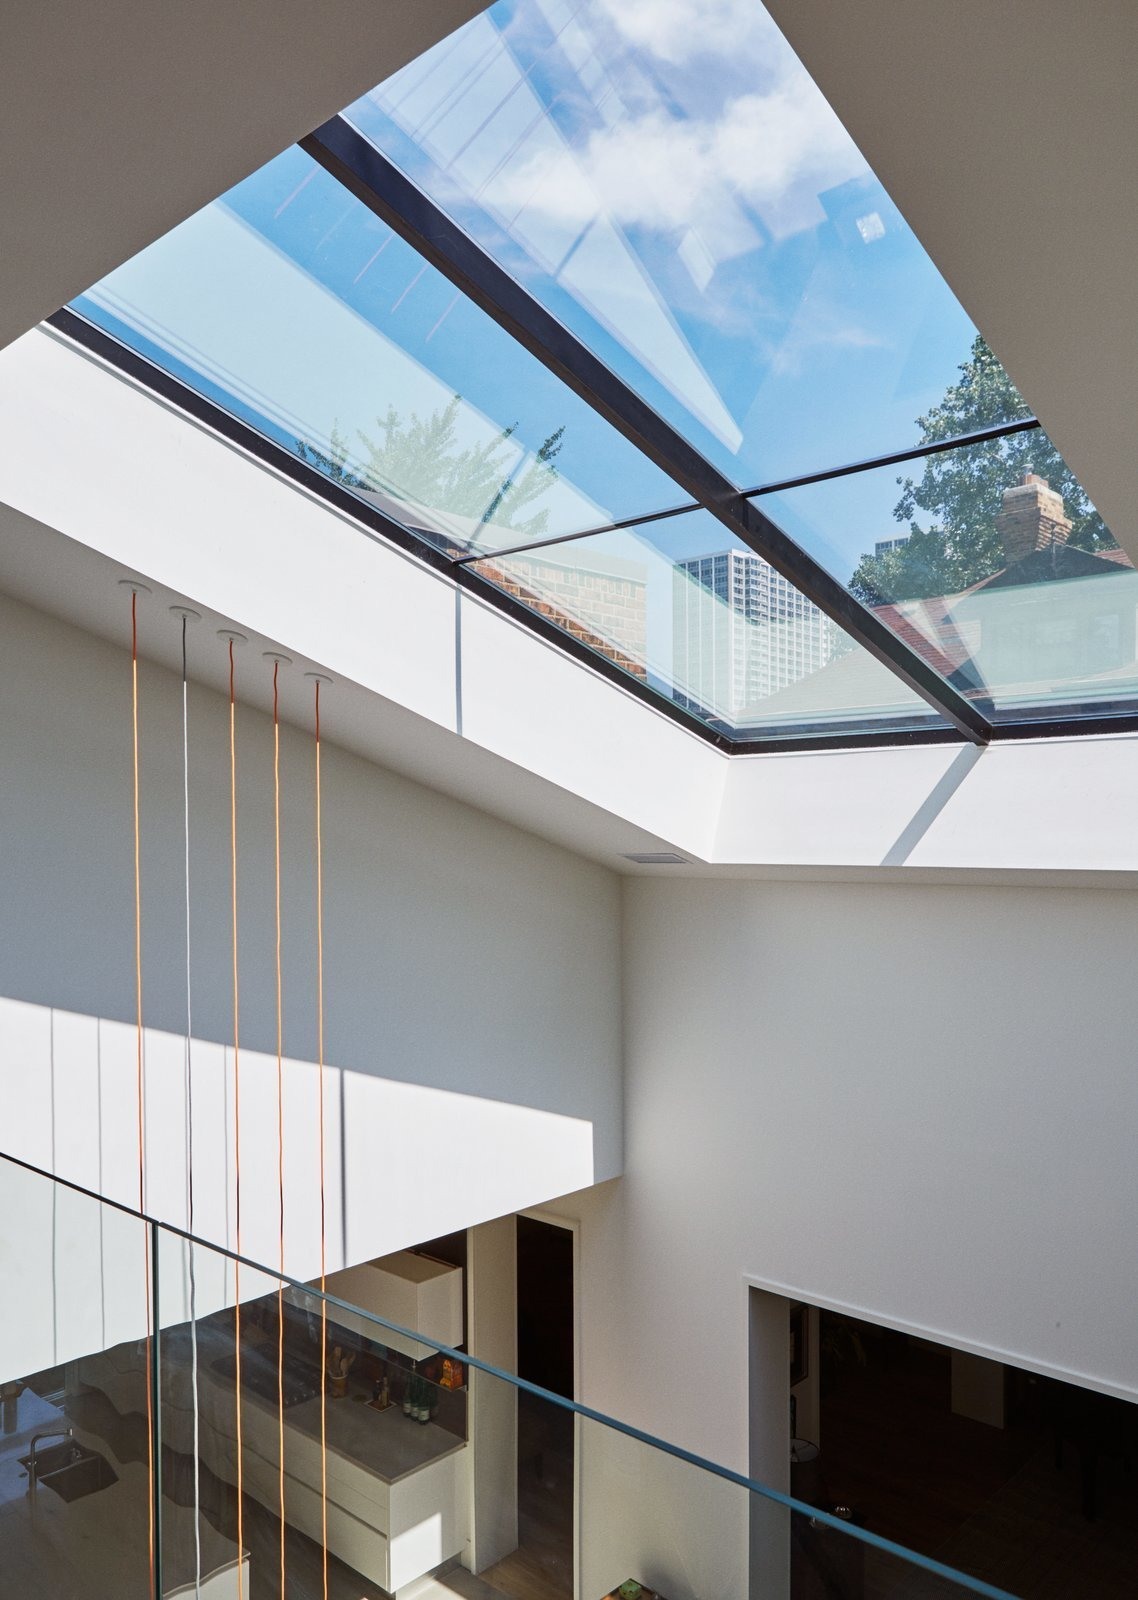 dSPACE Studio transformed a 1970s style Chicago residence into a bright, open and stylish home with an expansive 20-foot skylight that presents views of the surrounding neighborhood.